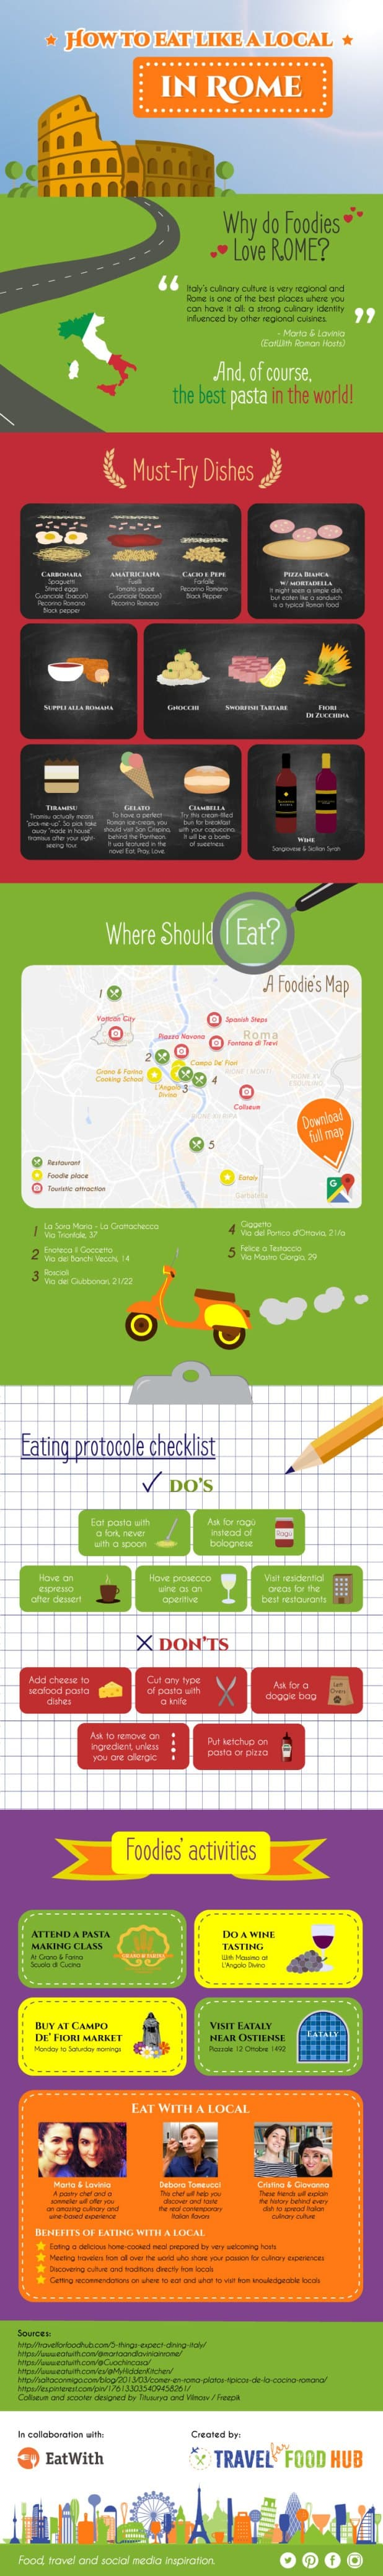 How to Eat like a Local in Rome infographic